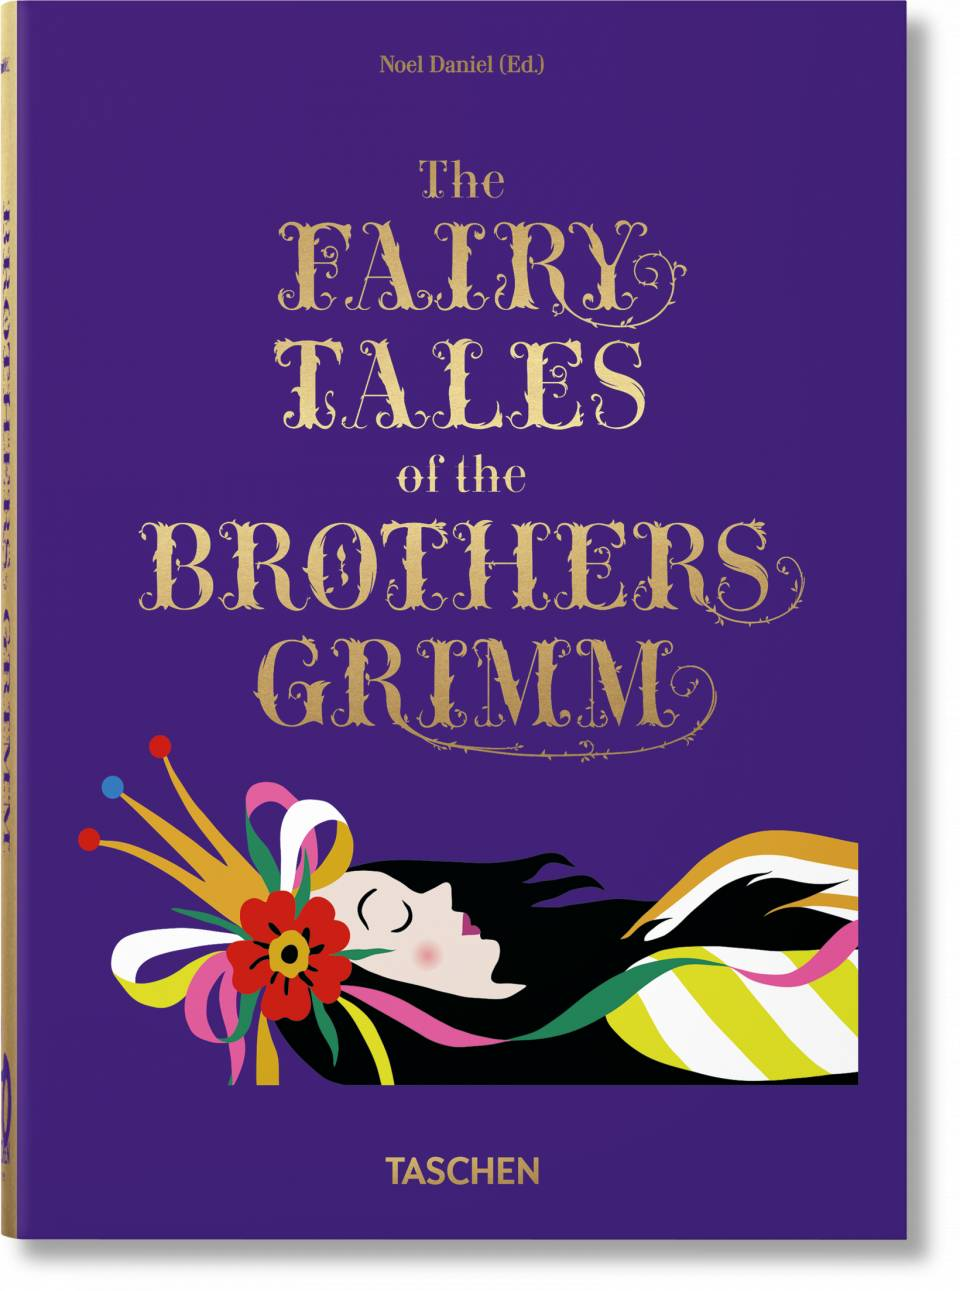 The Fairy Tales. Grimm & Andersen 2 in 1. 40th Anniversary Edition - image 1